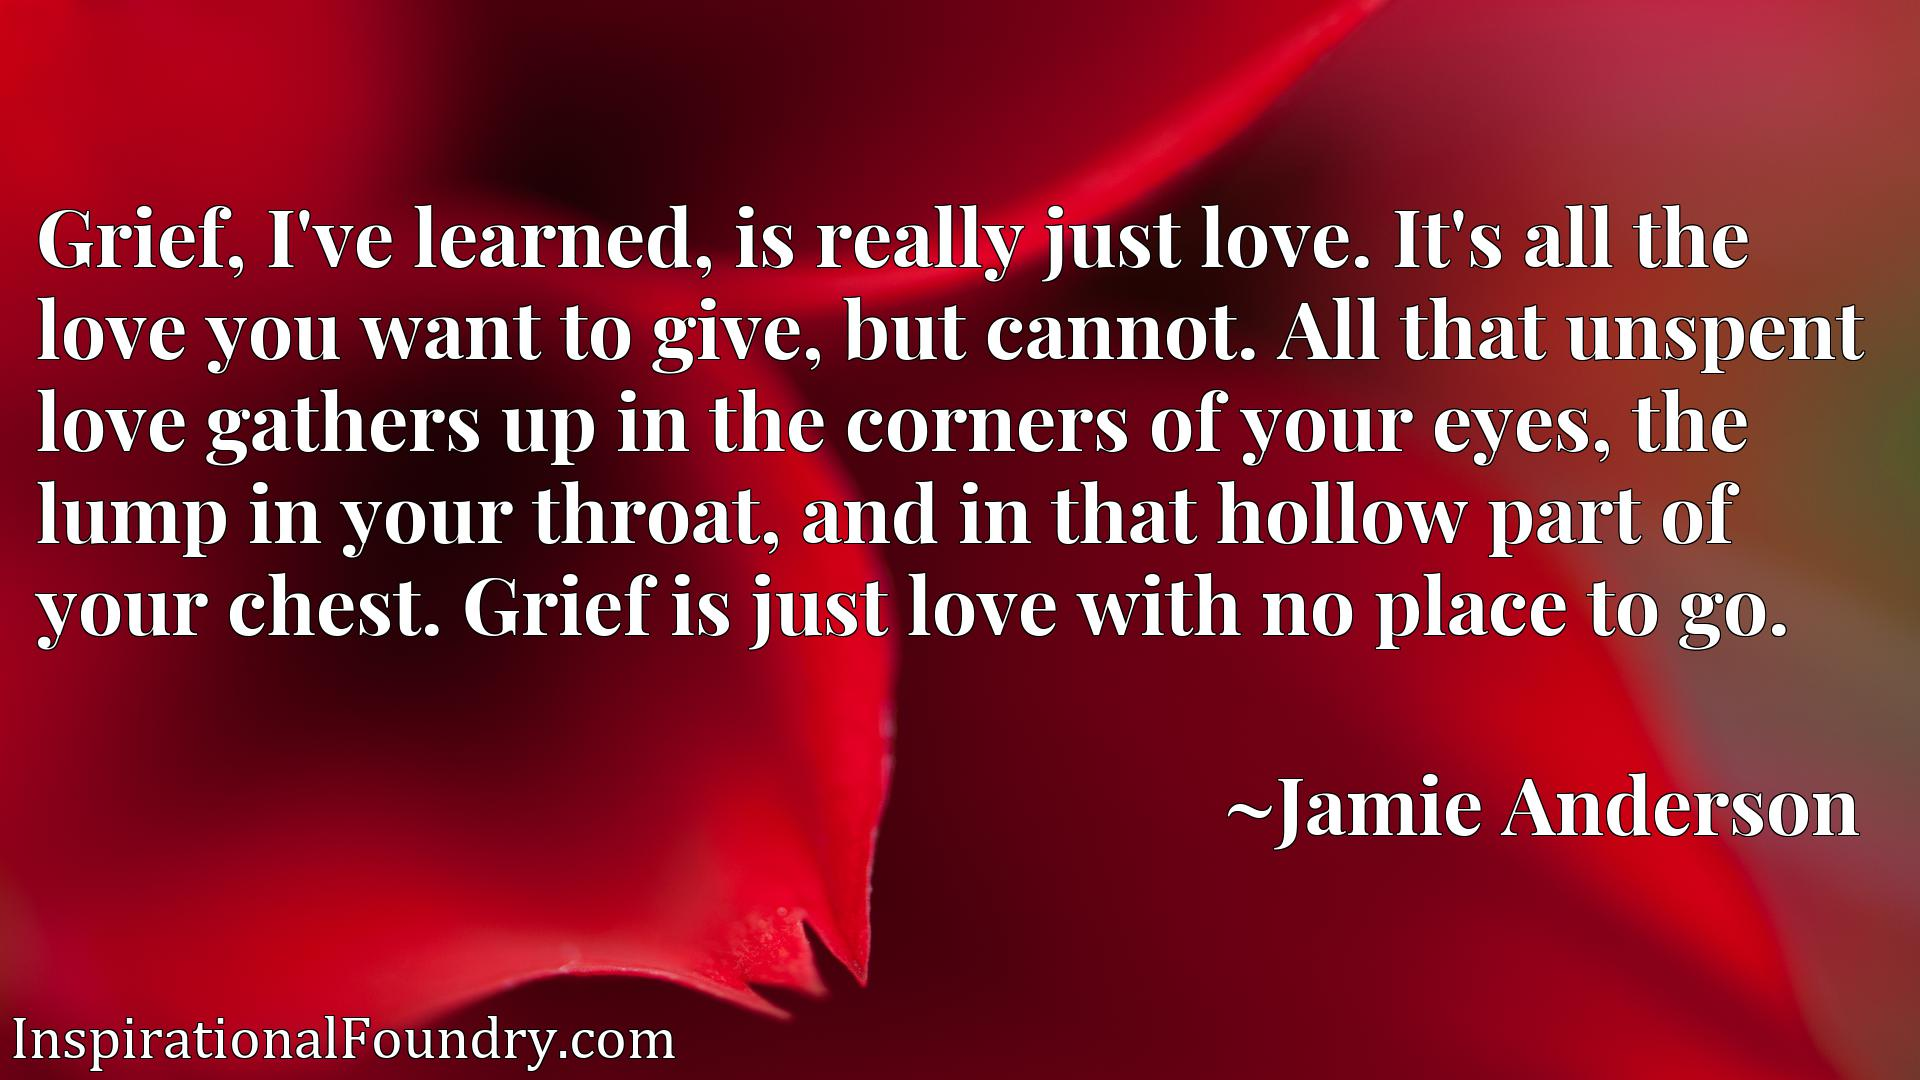 Grief, I've learned, is really just love. It's all the love you want to give, but cannot. All that unspent love gathers up in the corners of your eyes, the lump in your throat, and in that hollow part of your chest. Grief is just love with no place to go.